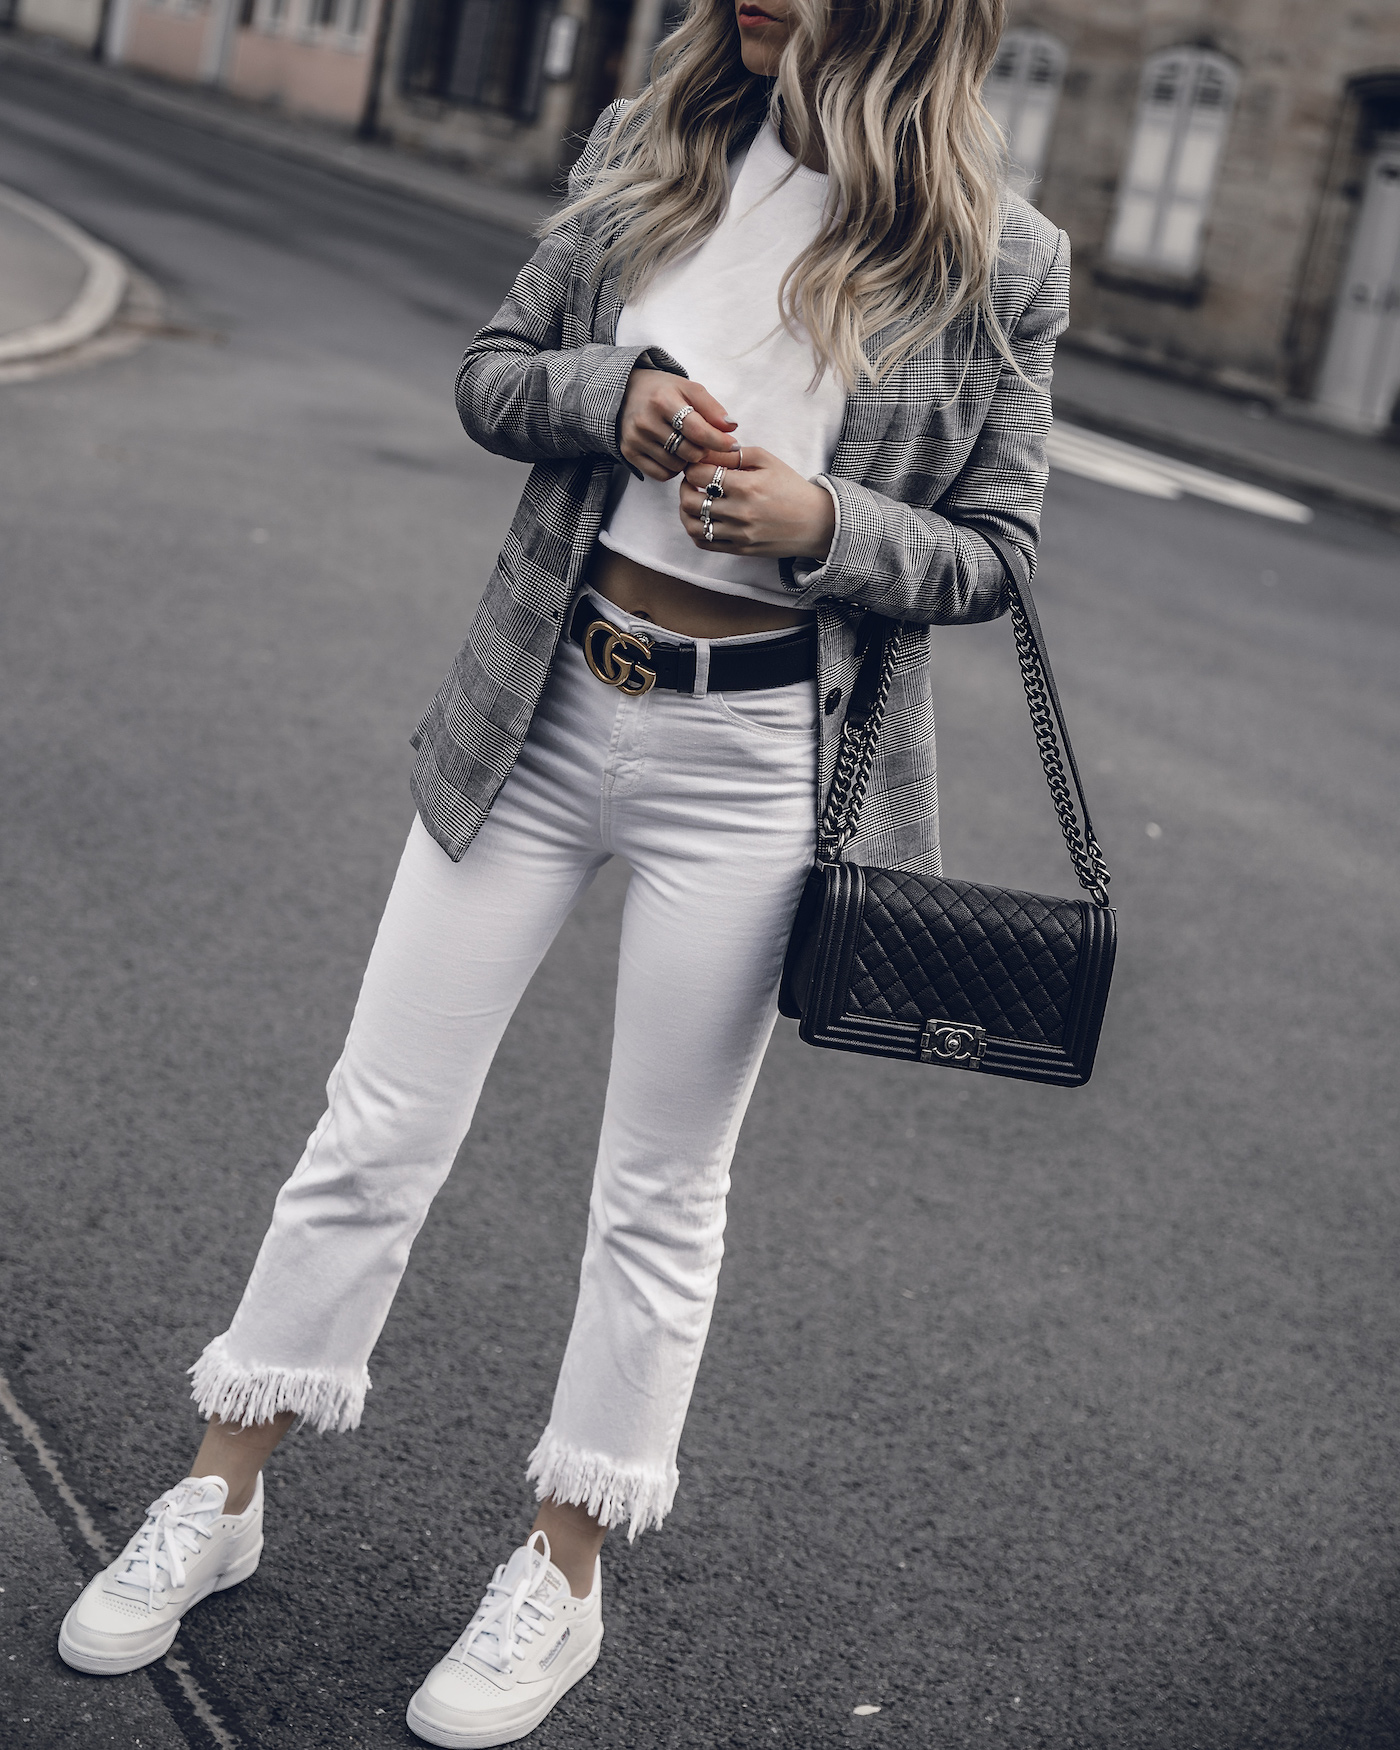 Spring Outfit 2018 White Denim Checked Blazer Cropped Sweatshirt Chanel Boy Bag Caviar | seen on Want Get Repeat Fashion Blog